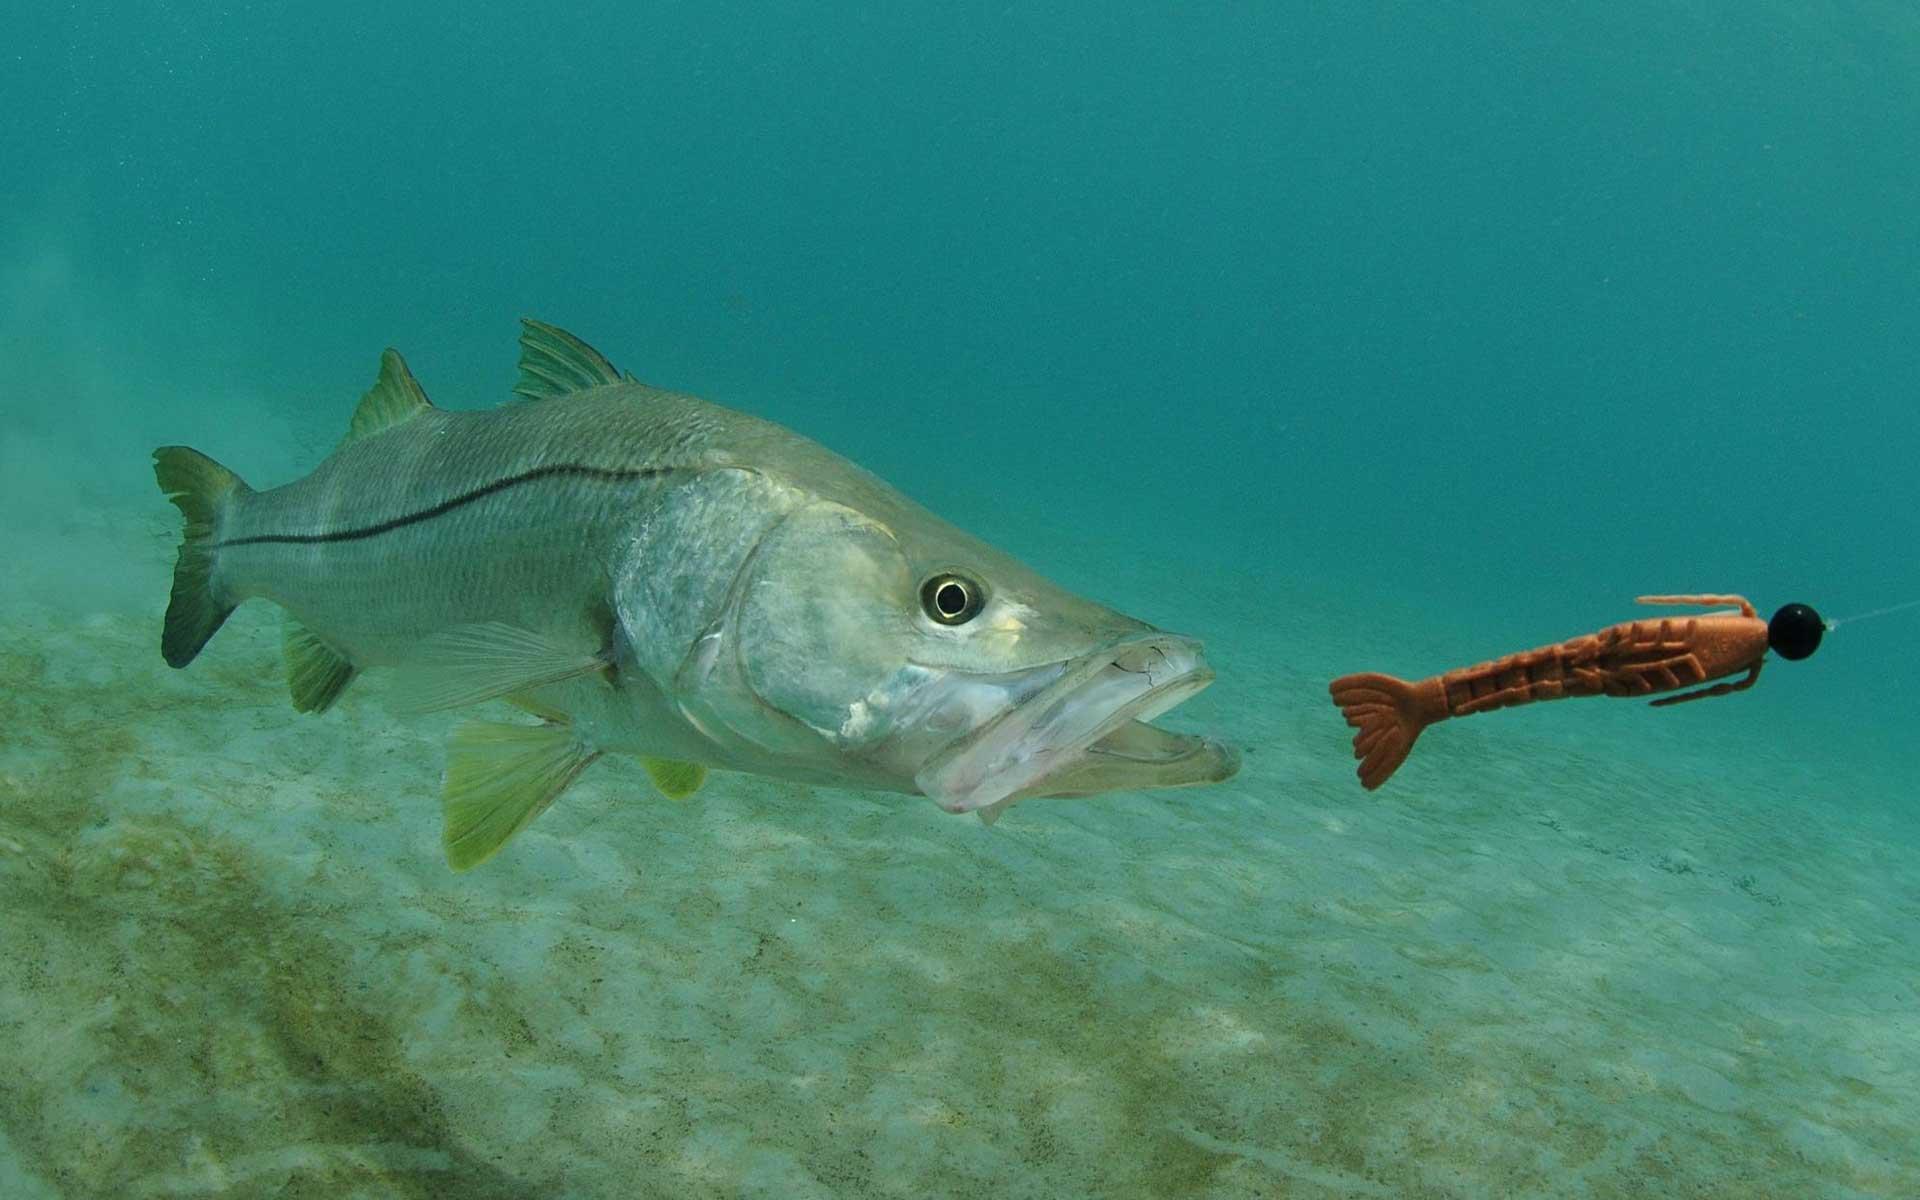 snook and lure